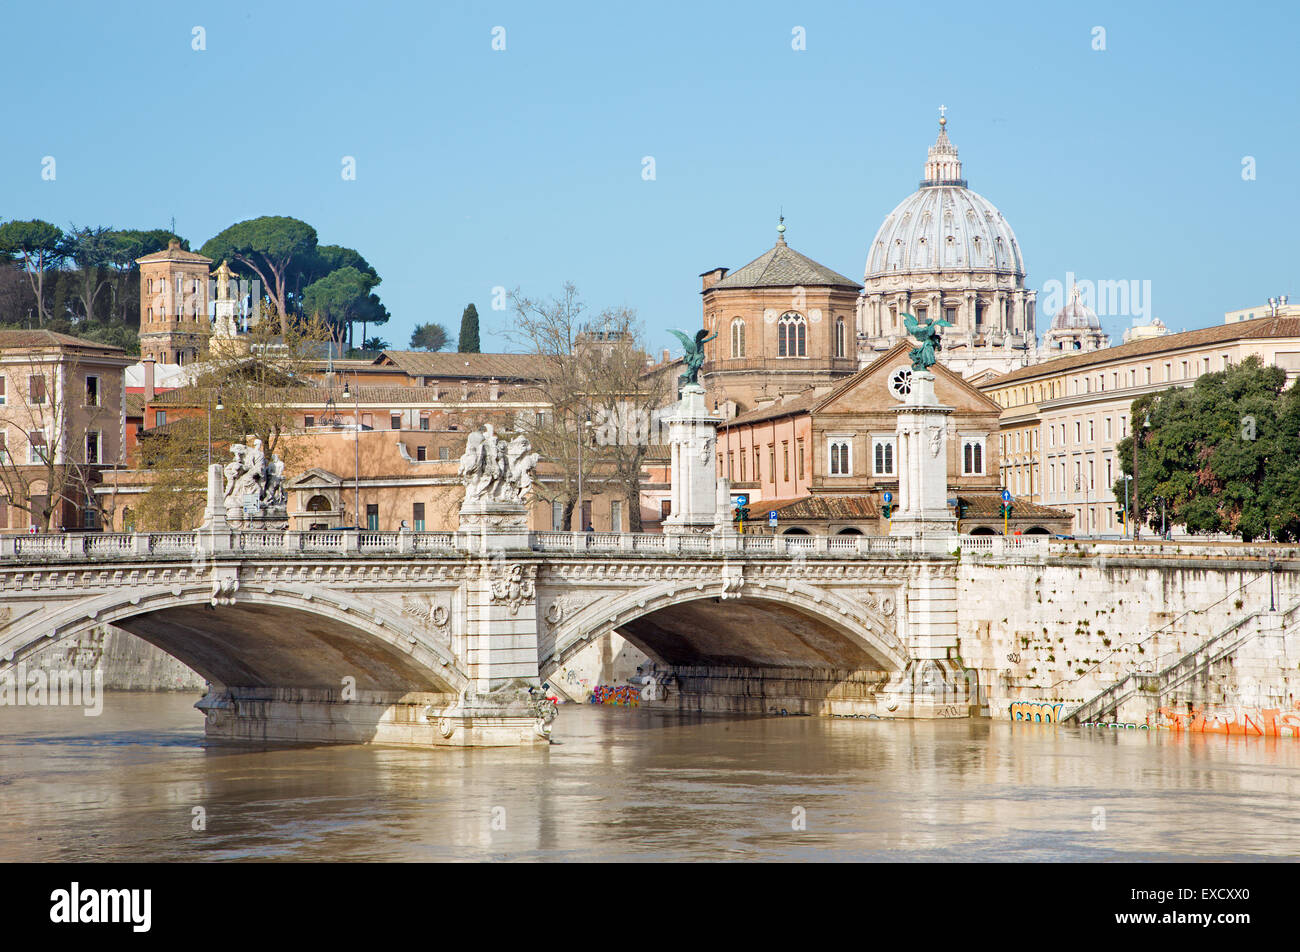 Rome - Vittorio Emanuele II and cupola of St. Peters basilica in the background. Stock Photo